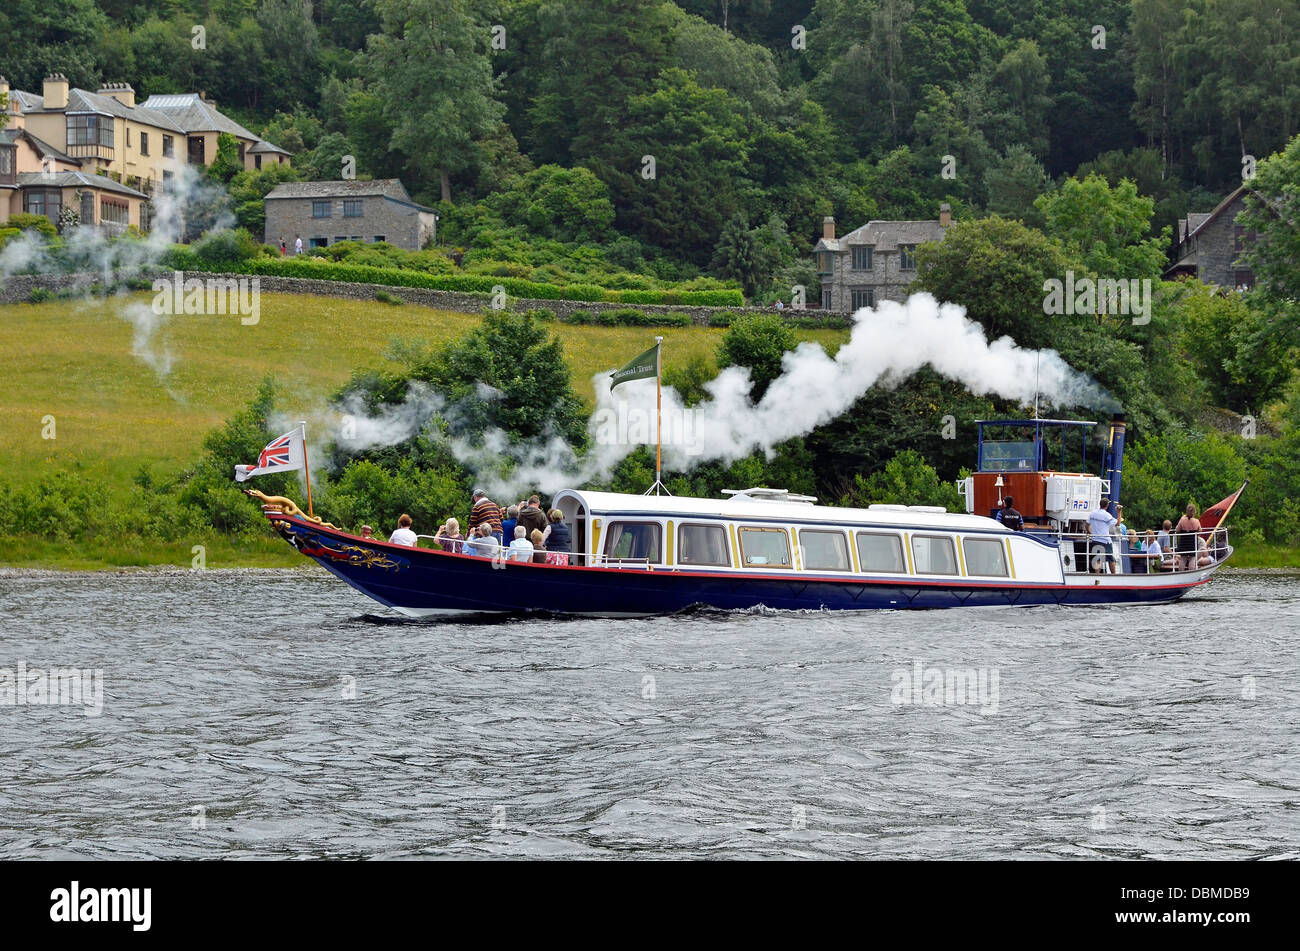 Steam yacht Gondola is a rebuilt Victorian, screw-propelled, steam-powered passenger vessel on Coniston Water, England - Stock Image